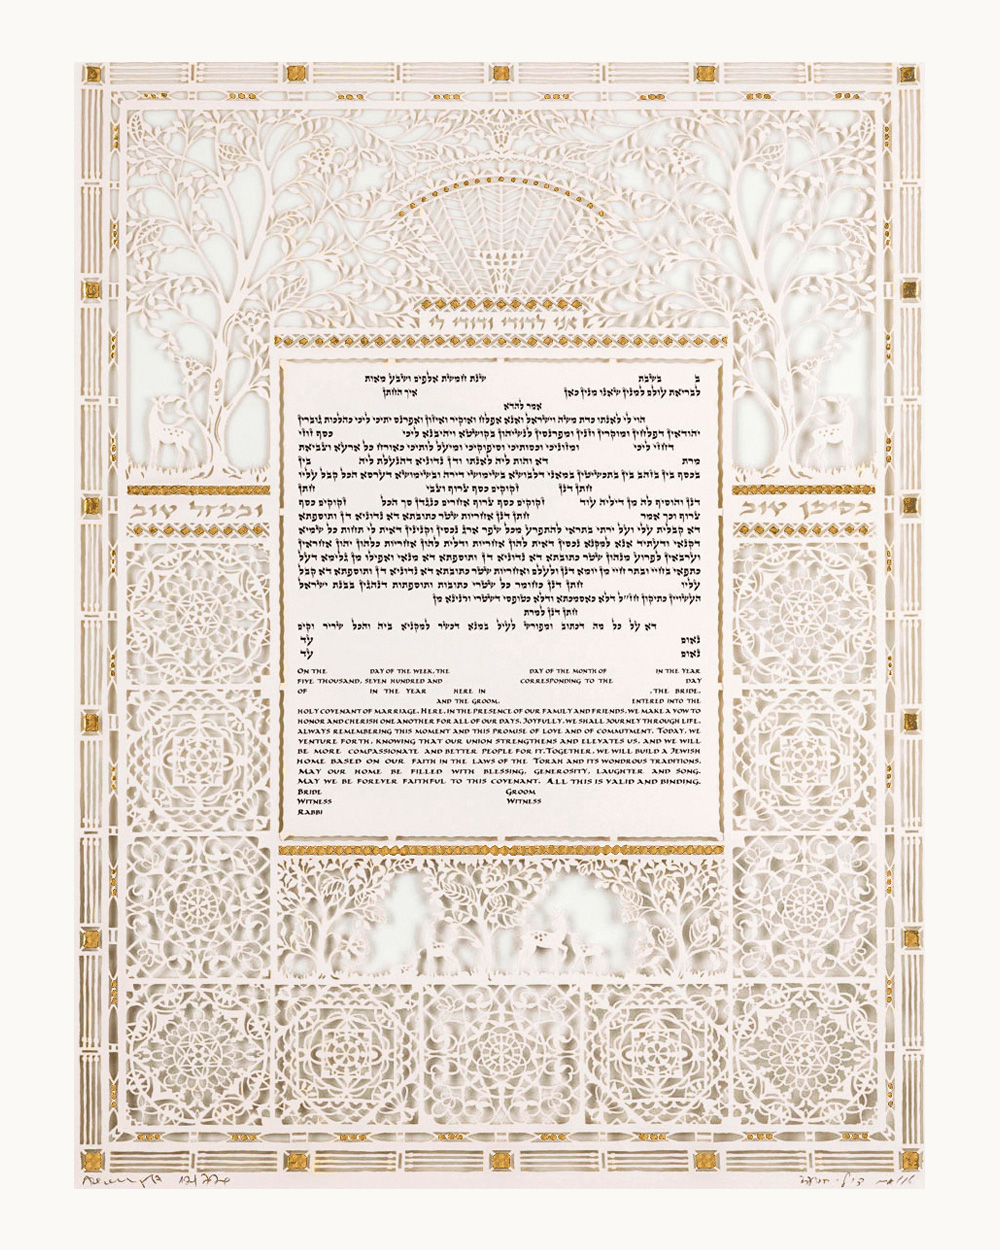 This is a full size image of the Garden Ketubah by Danni Azulai